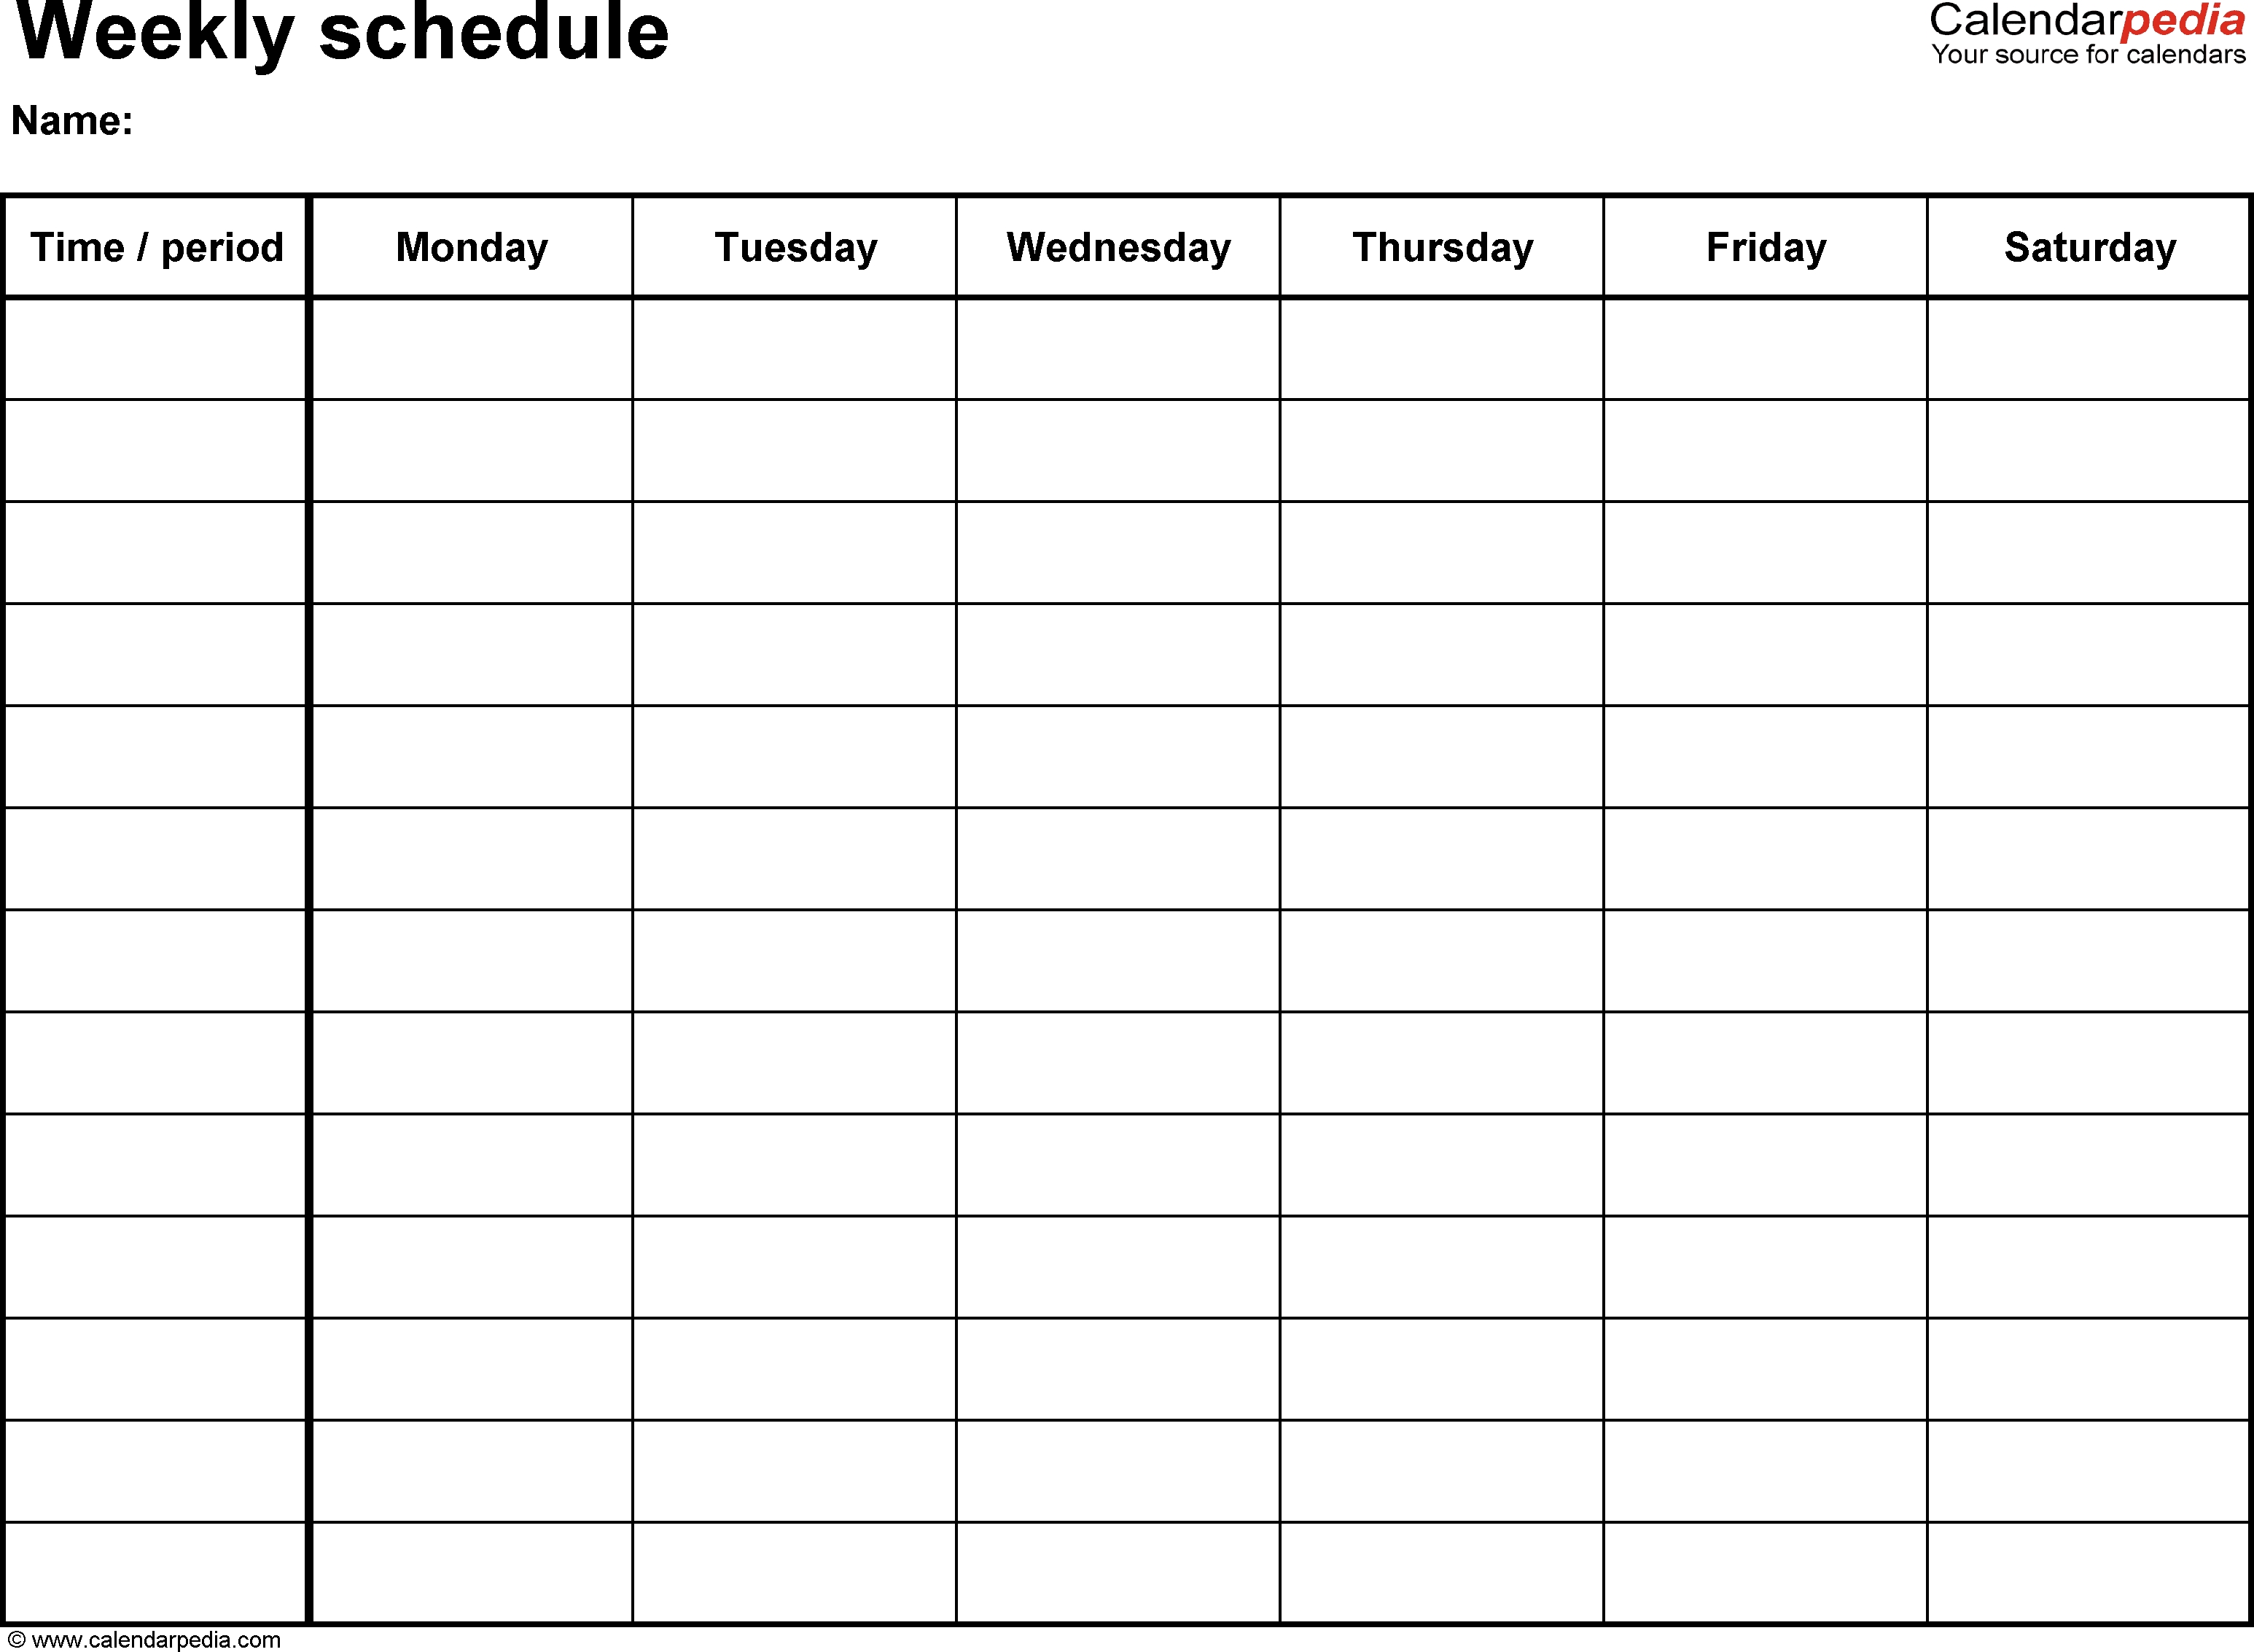 Free Weekly Schedule Templates For Word - 18 Templates-Blank Monday Through Friday Calendar